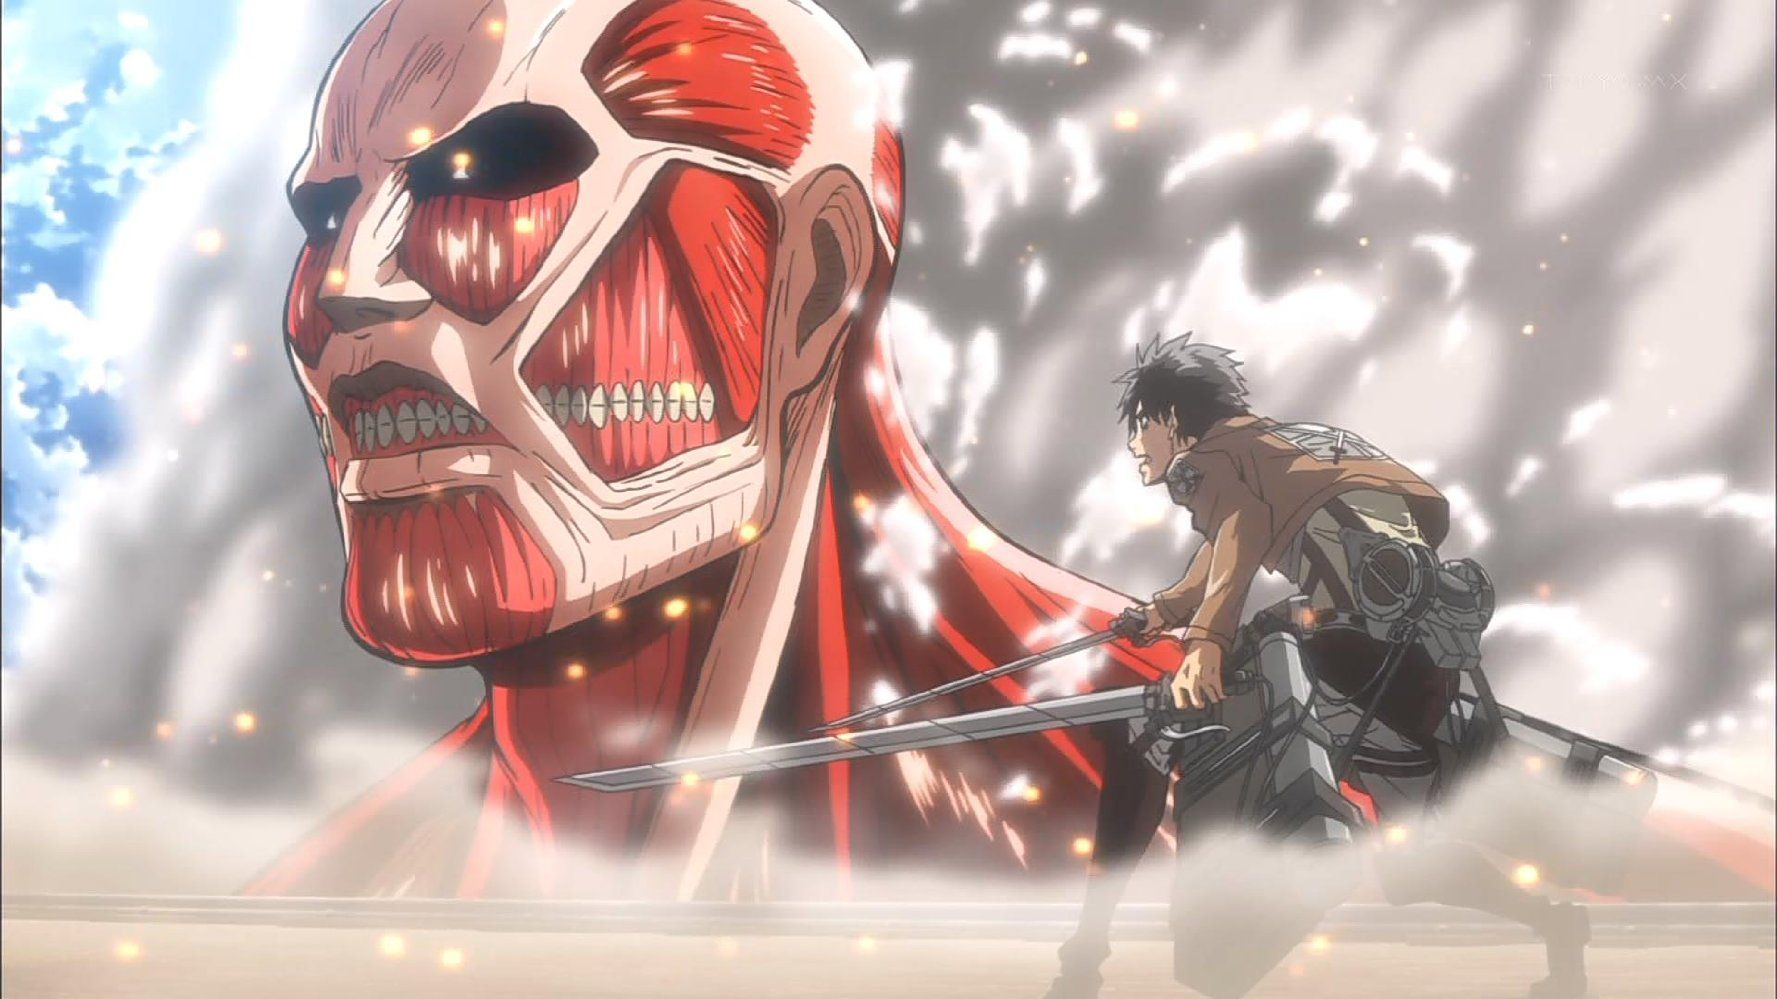 Myanime Wallpaper When Will Attack On Titan Season 4 Wallpaper